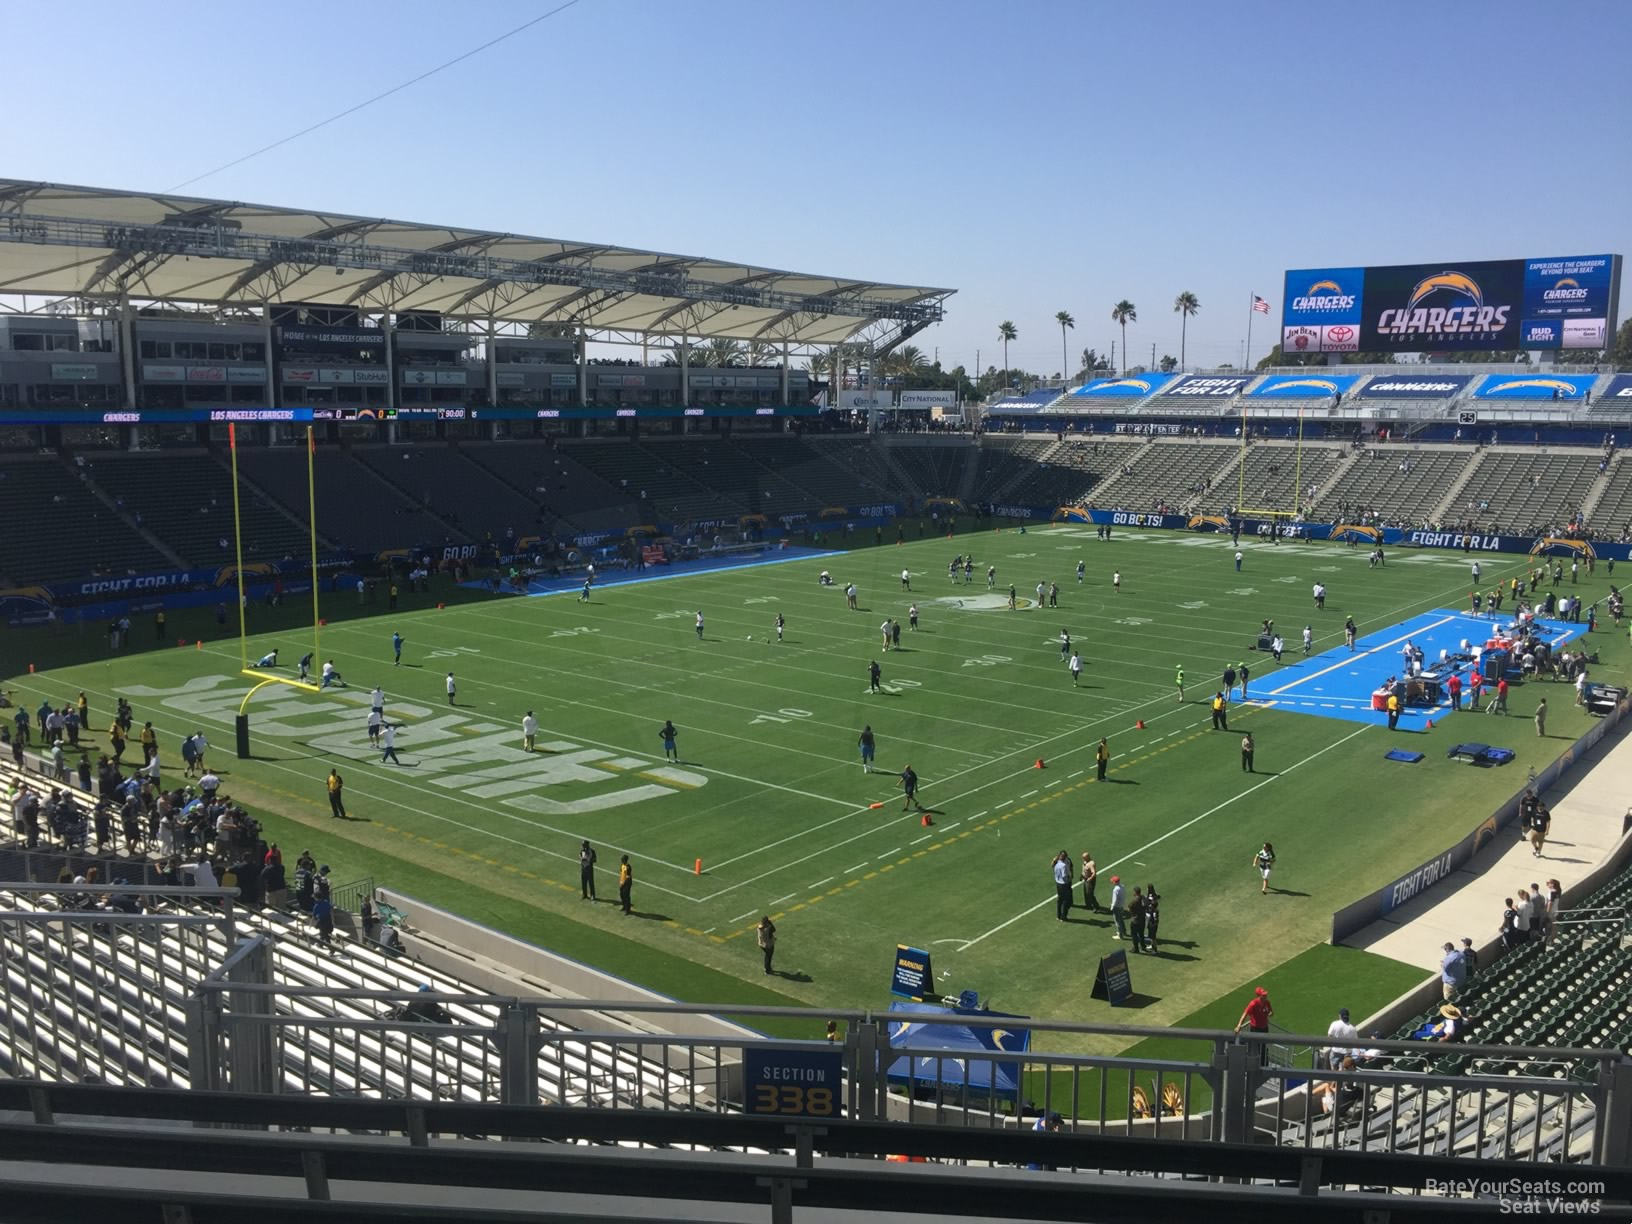 Los Angeles Chargers Seat View For Dignity Health Sports Park Section 338 Row Hh